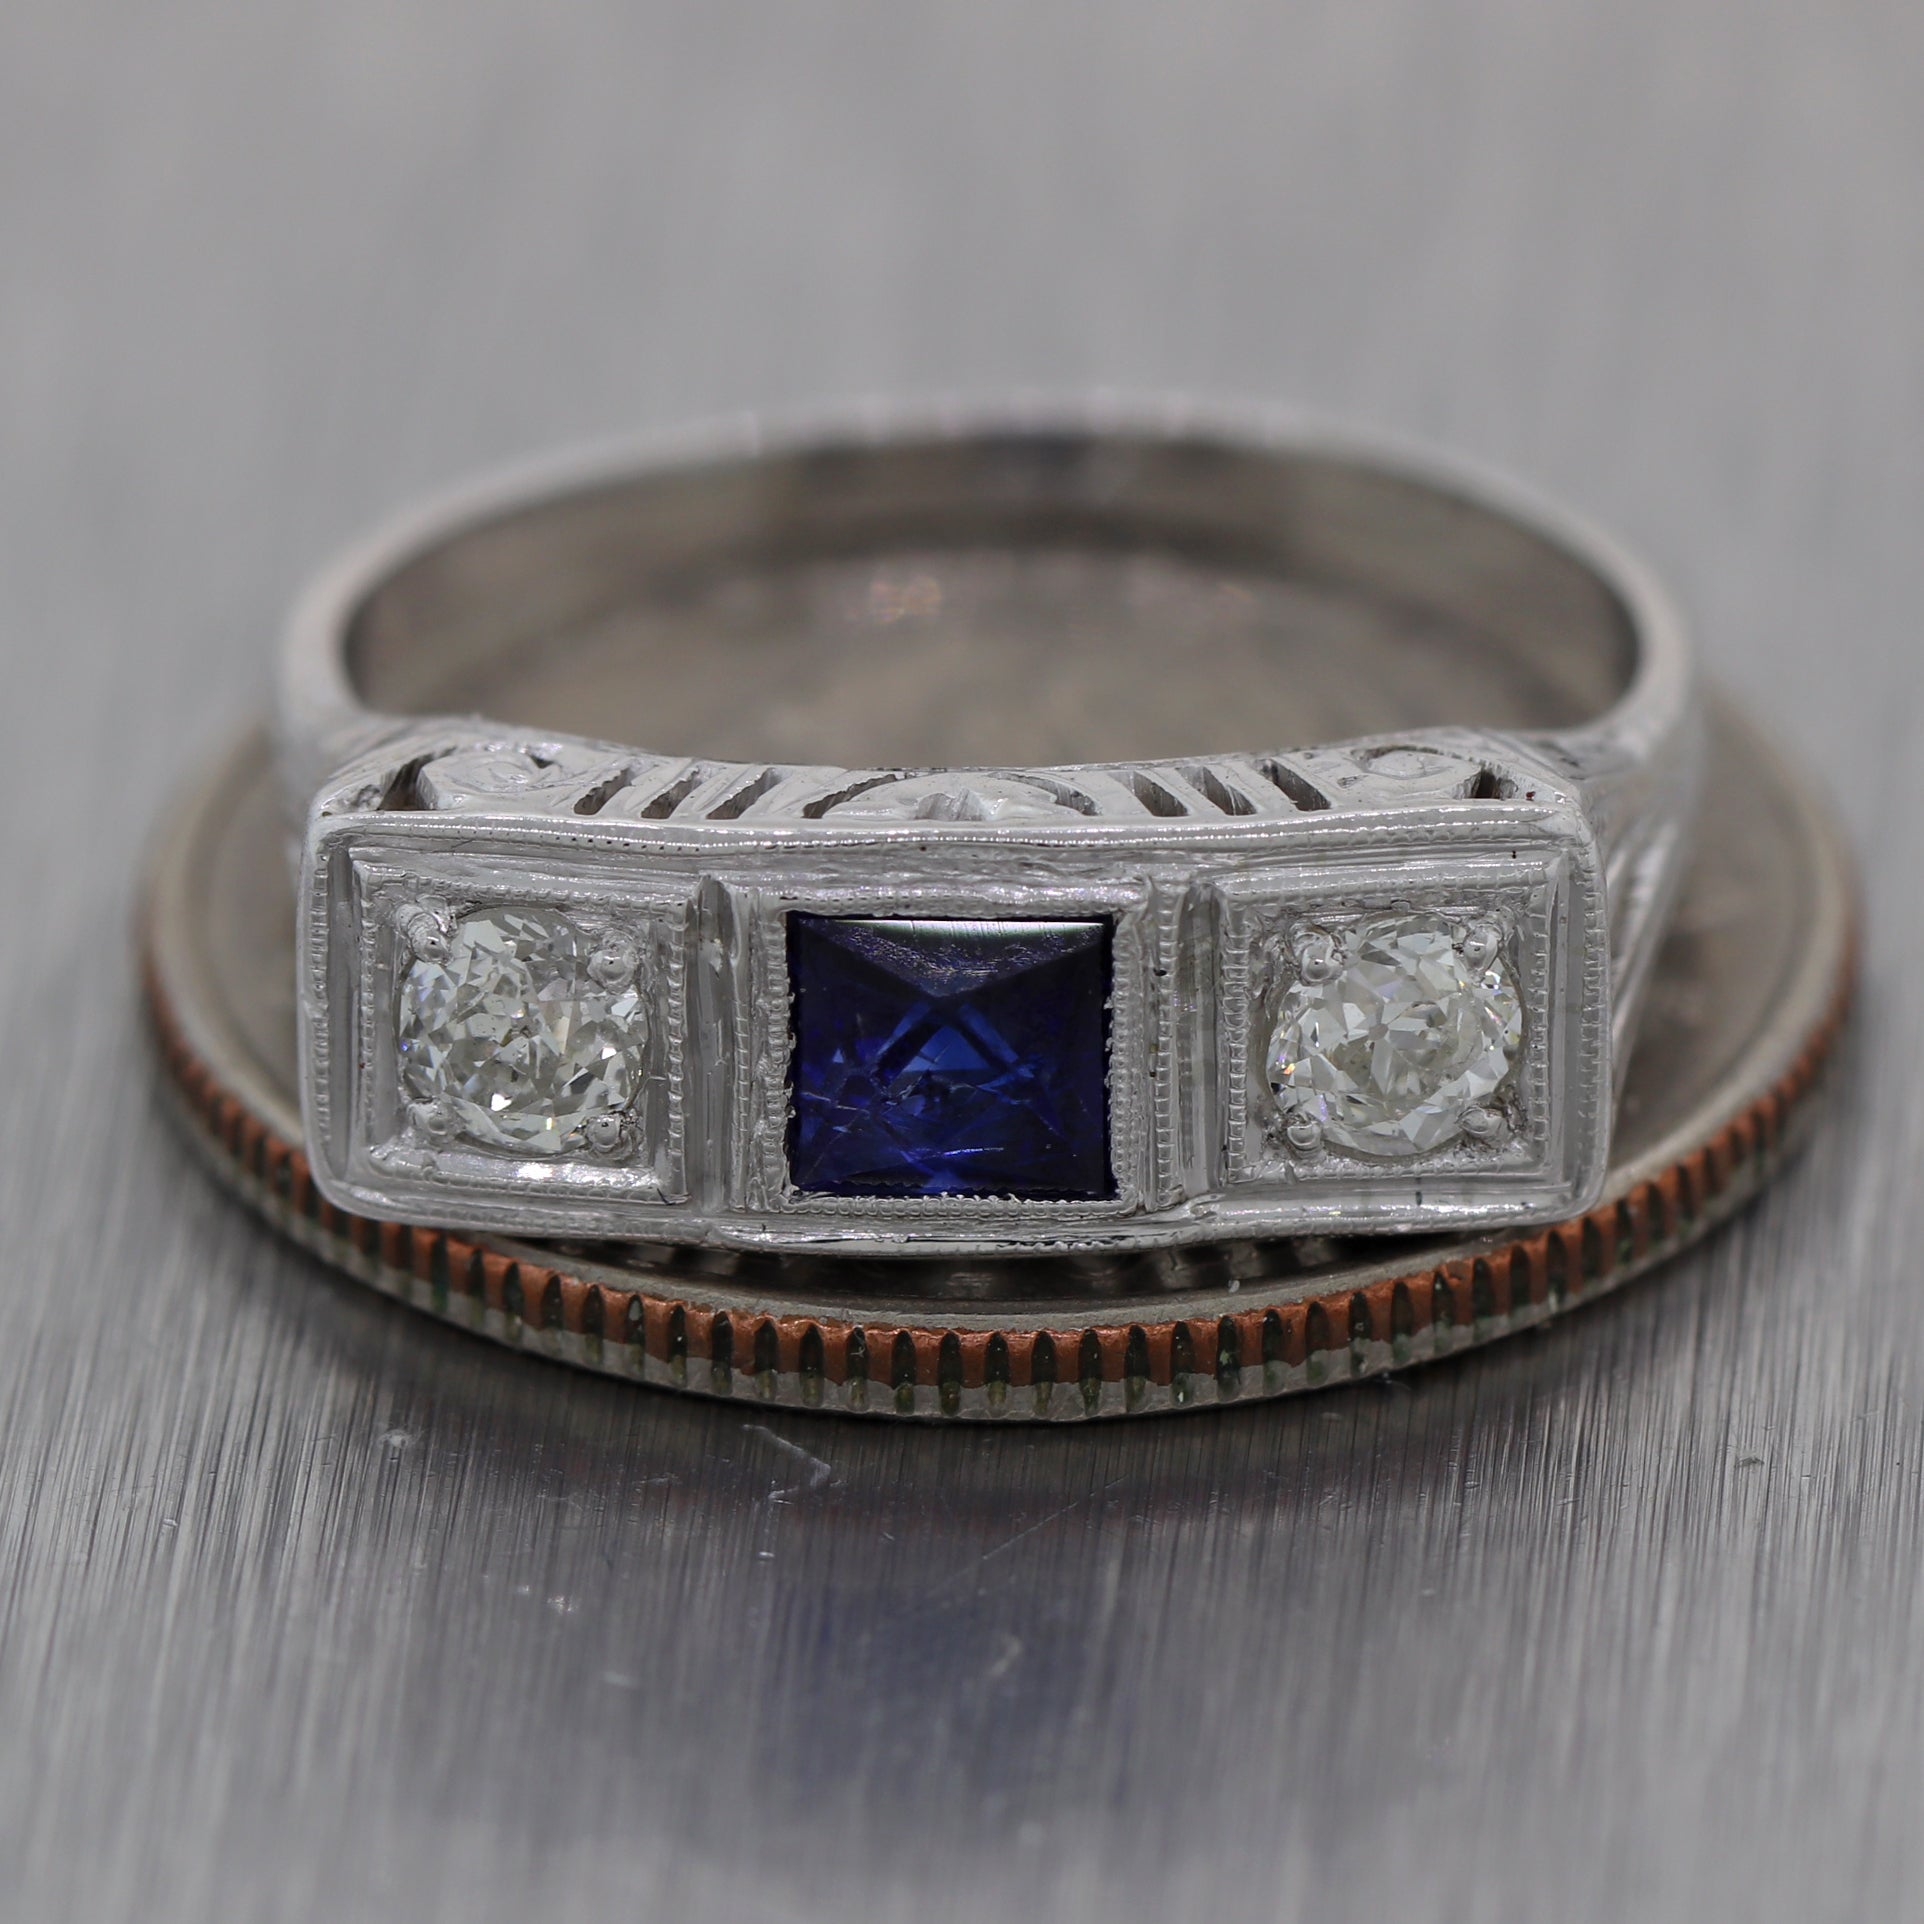 1930's Antique Art Deco 14k White Gold 0.73ctw Sapphire & Diamond Ring